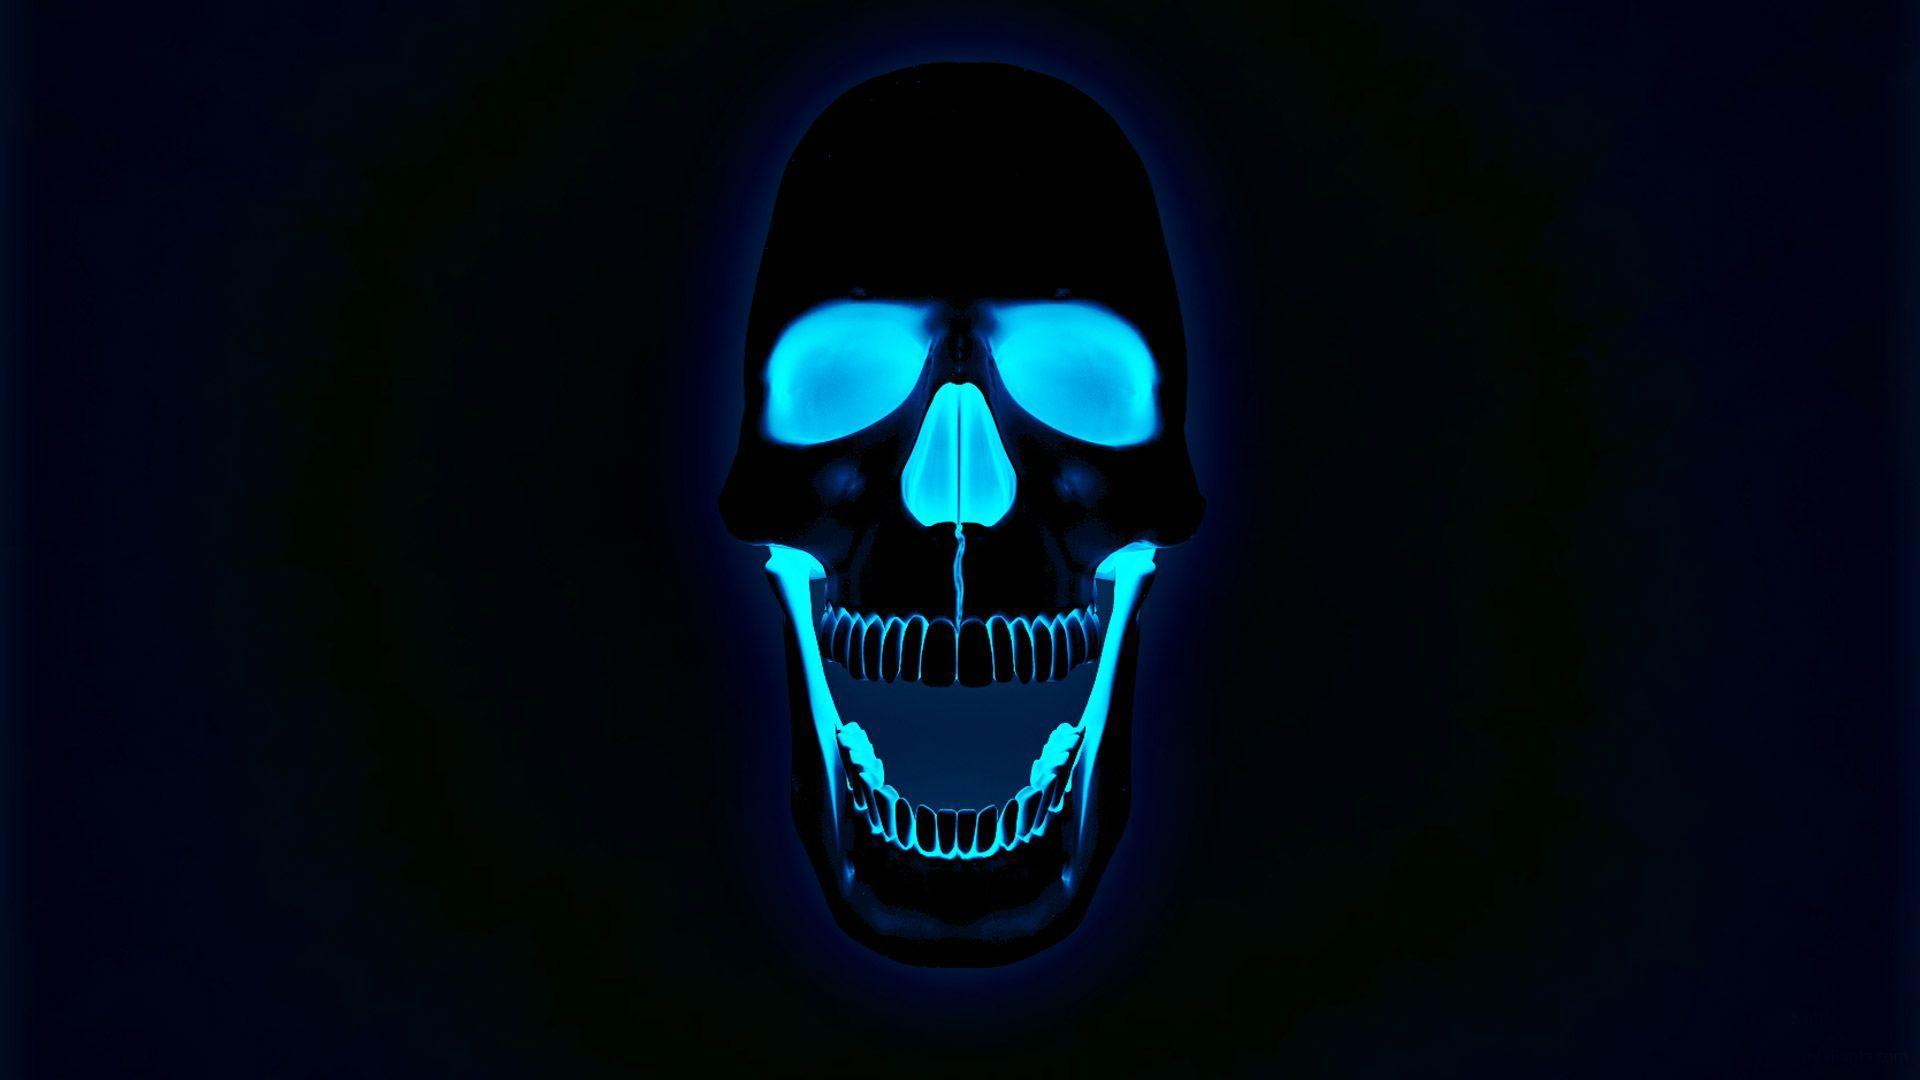 skull wallpaper for windows 7 - photo #27